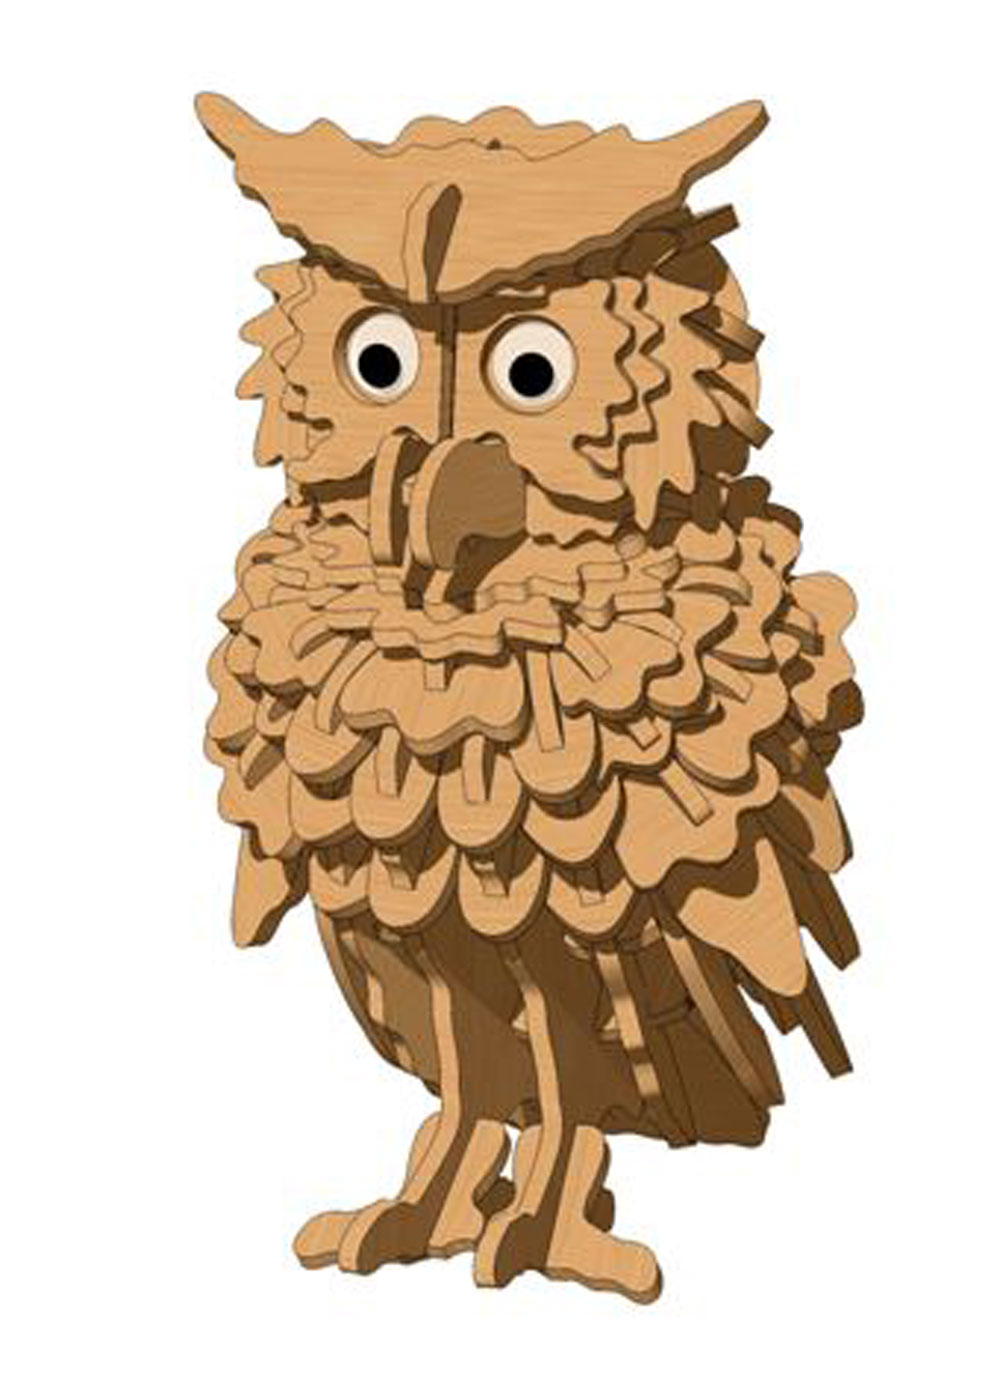 The Curious Owl - Birds | MakeCNC.com